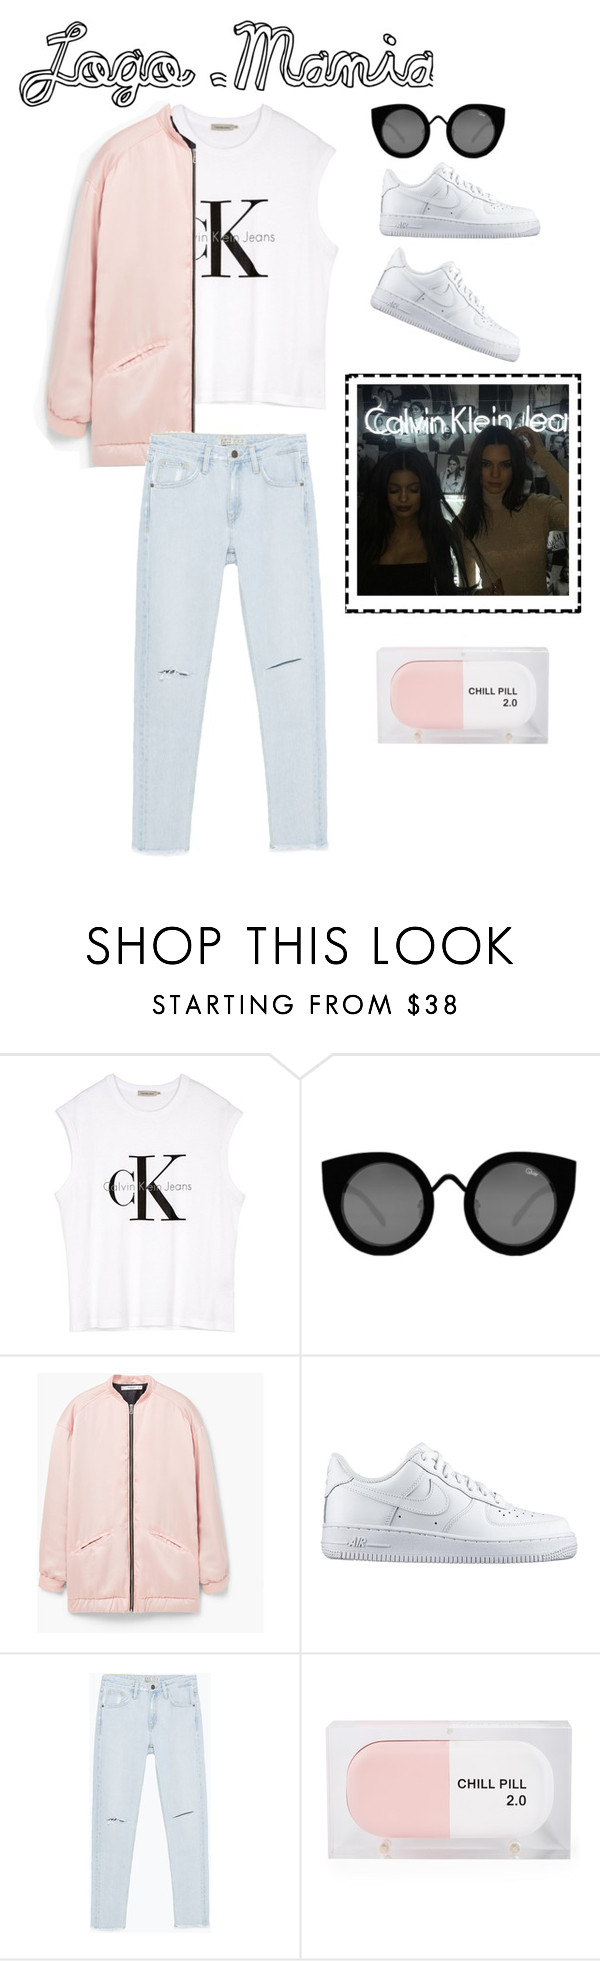 """Untitled #20"" by theeleventhhour ❤ liked on Polyvore featuring Calvin Klein, Quay, MANGO, NIKE, Zara and Sarah's Bag"